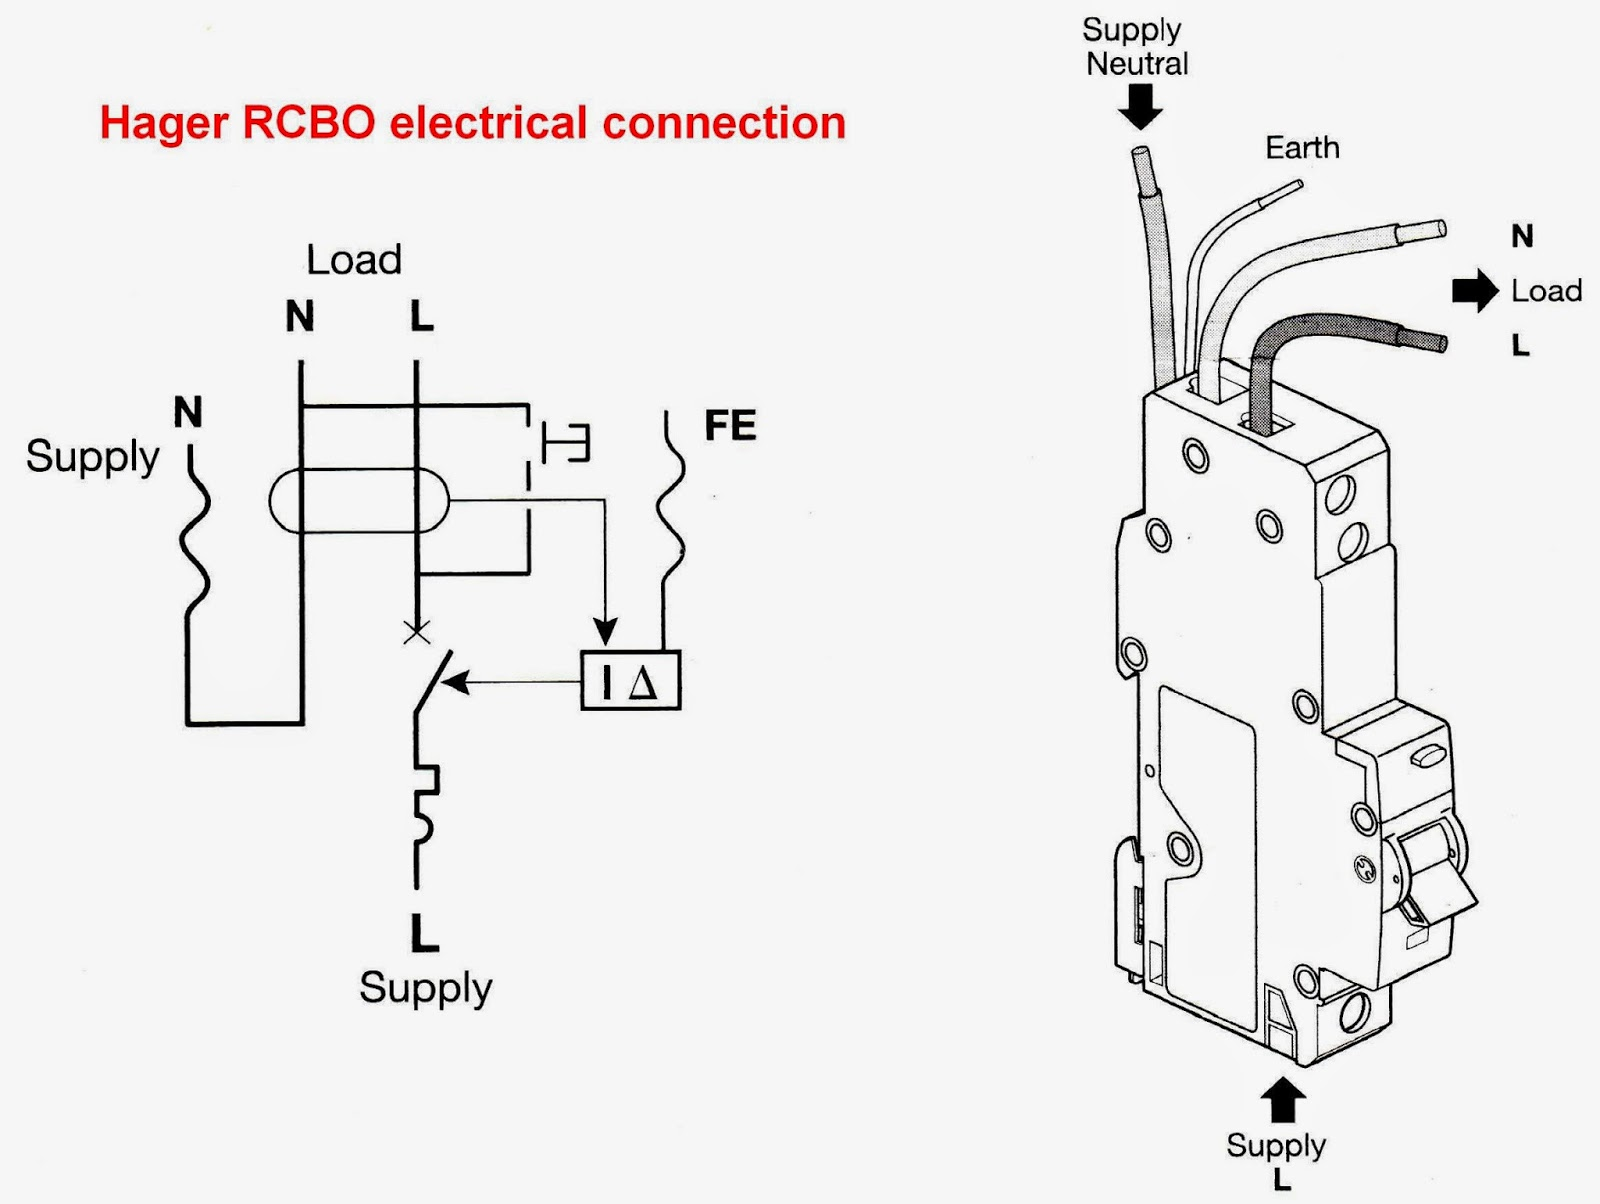 perfect rcbo wiring diagram picture collection best images for rh oursweetbakeshop info crabtree rcbo wiring diagram clipsal rcbo wiring diagram